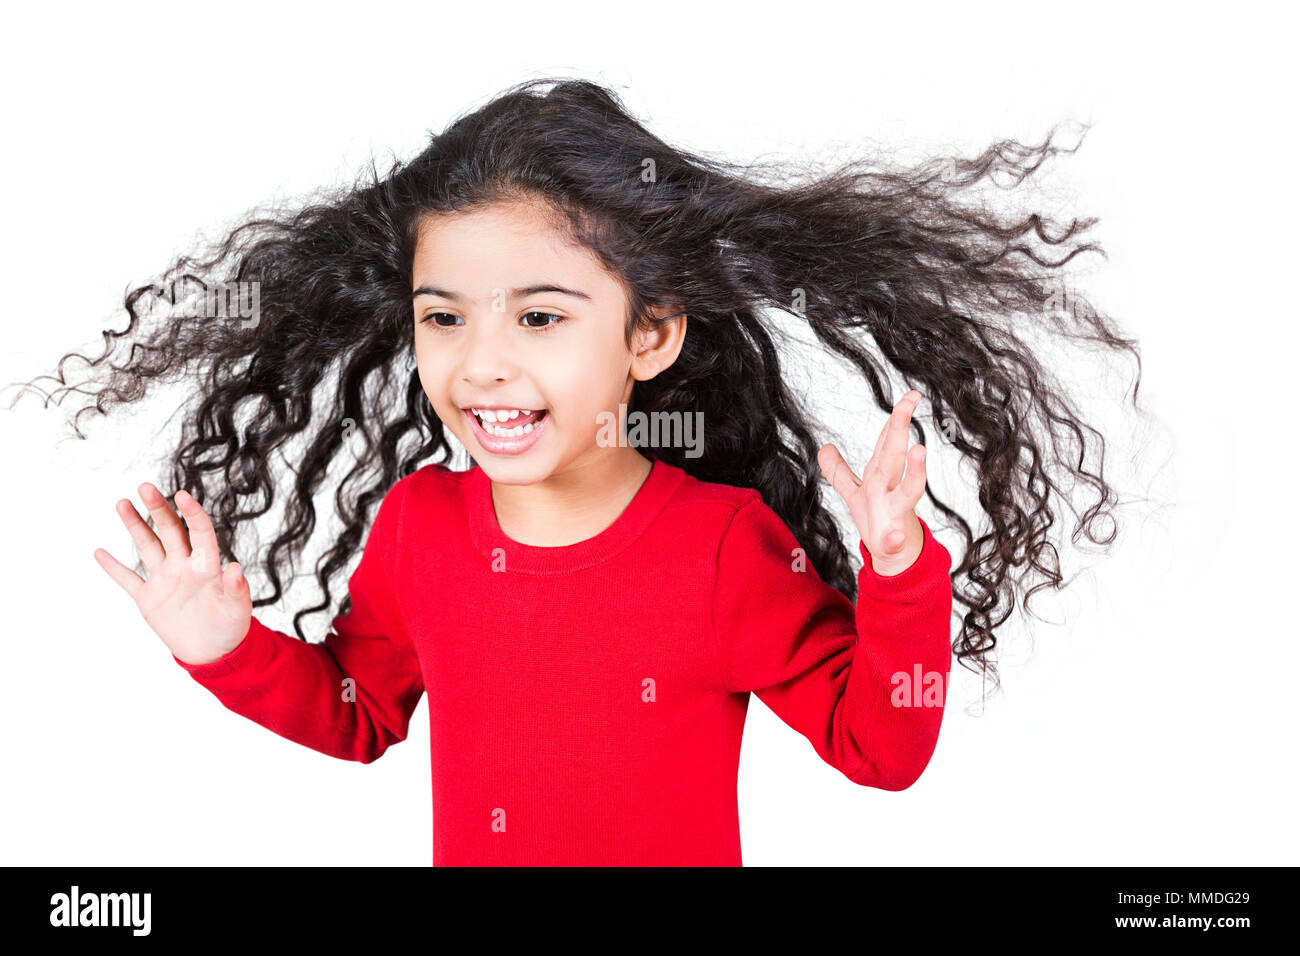 Laughing One Kid Girl Tousled Hair Having Fun Cheerful Enjoying - Stock Image